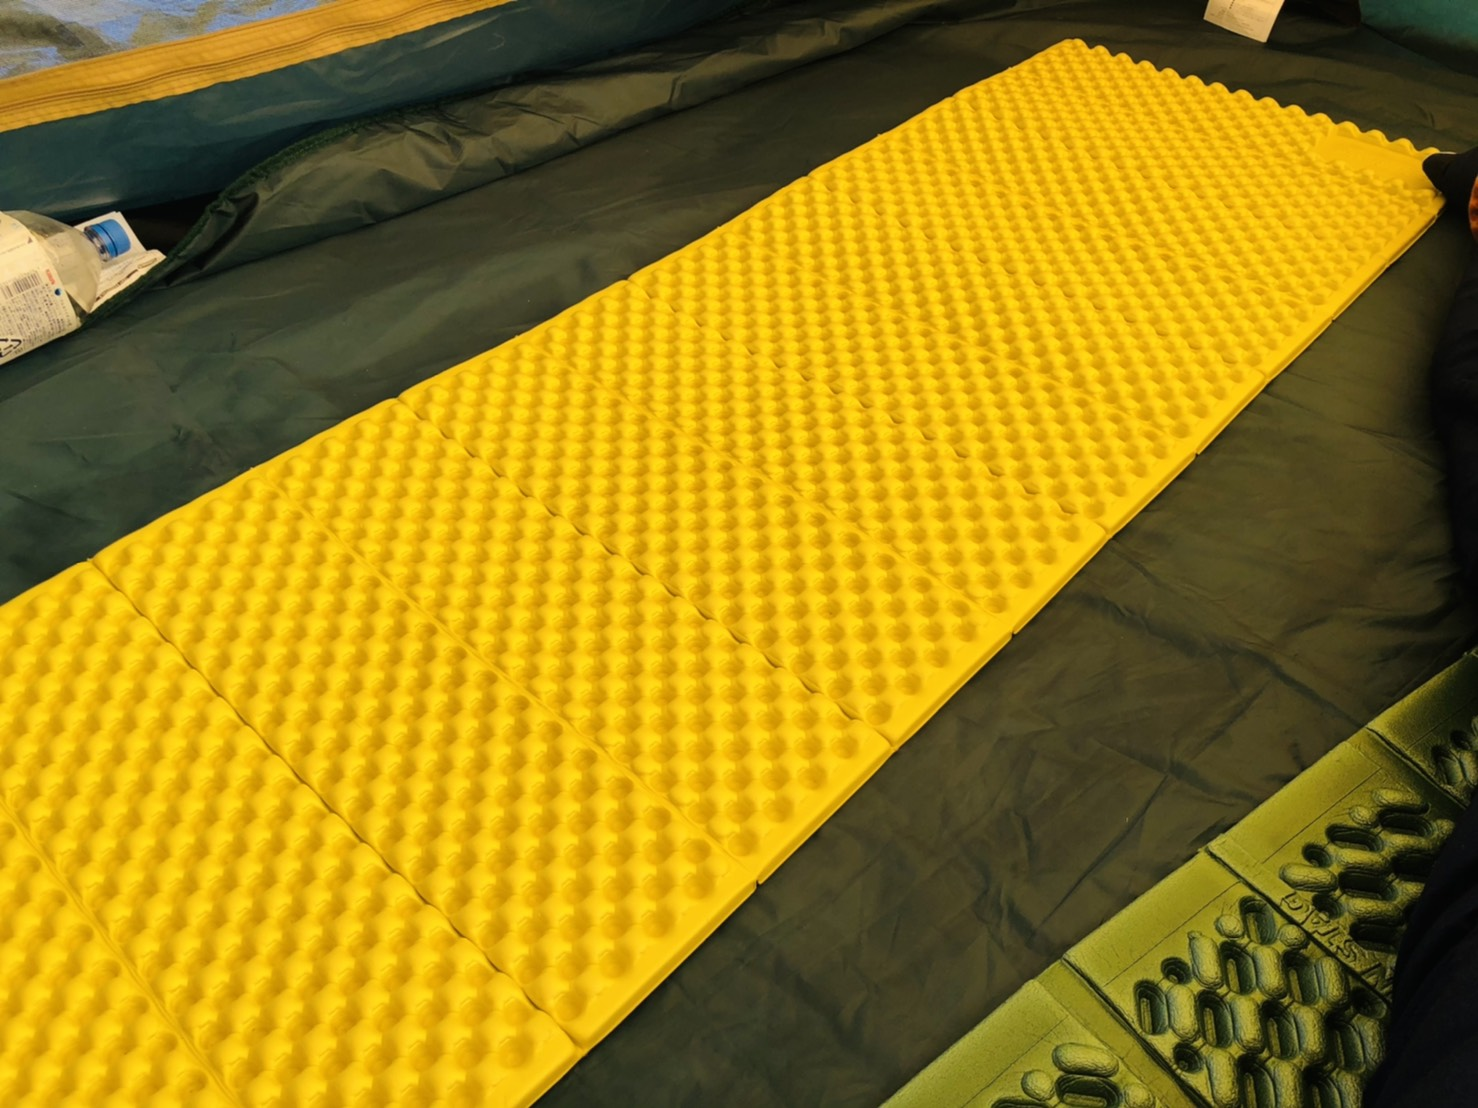 mat-thermarest1